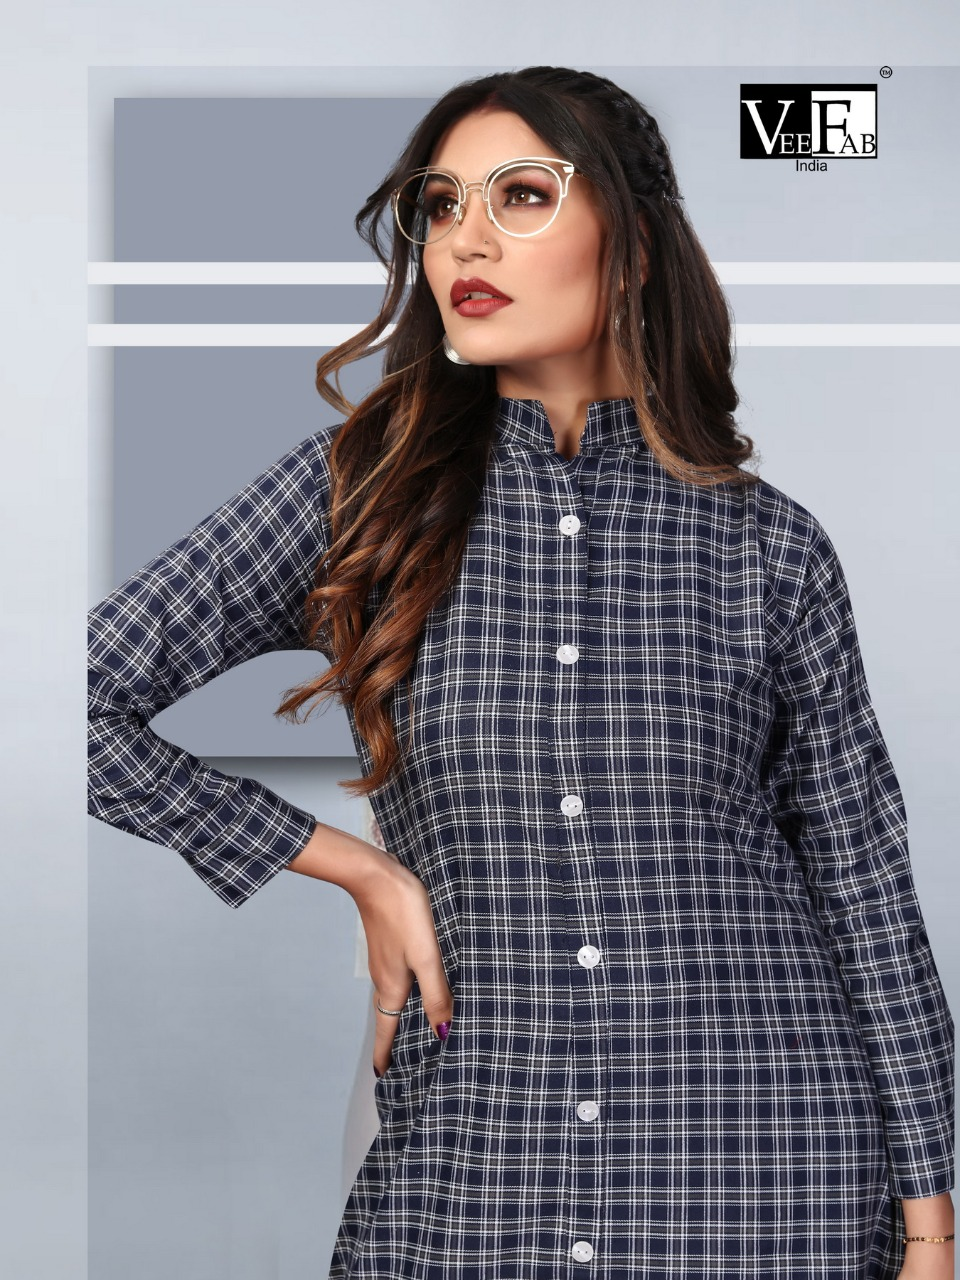 Vee Fab Winter Grace Vol 7 Kurti Wholesale Catalog 6 Pcs 7 - Vee Fab Winter Grace Vol 7 Kurti Wholesale Catalog 6 Pcs